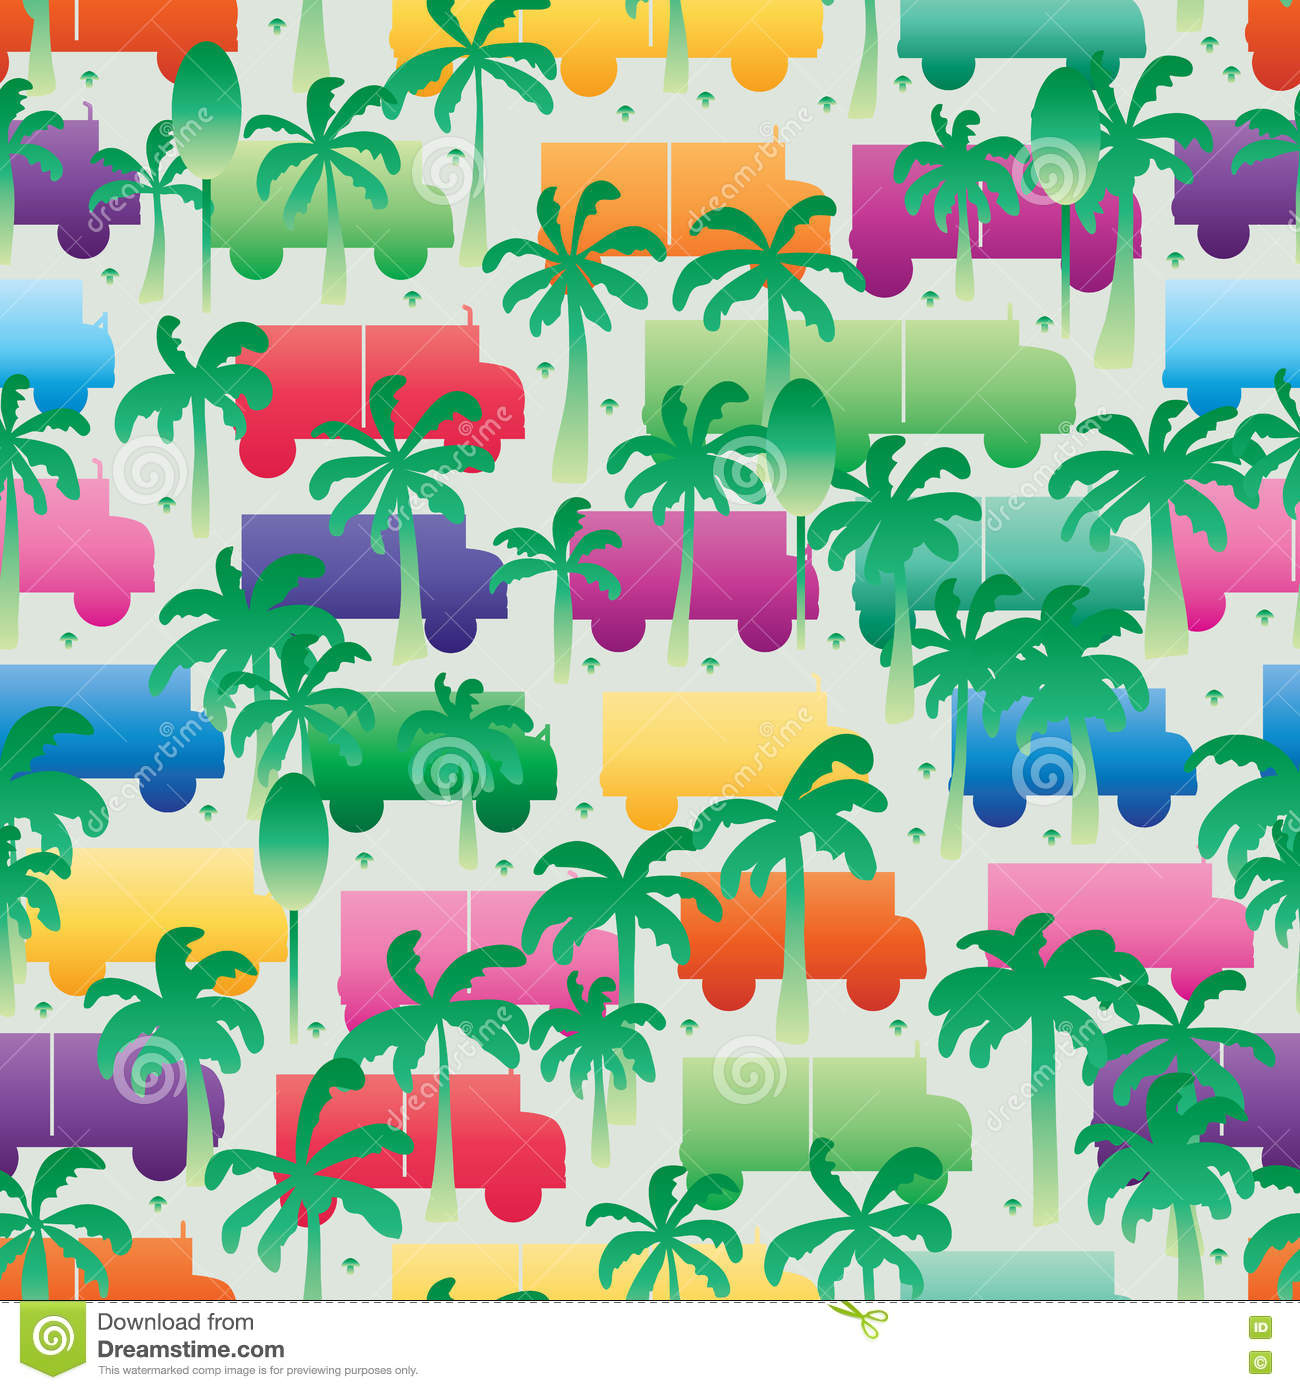 Natural reduce pollution seamless pattern